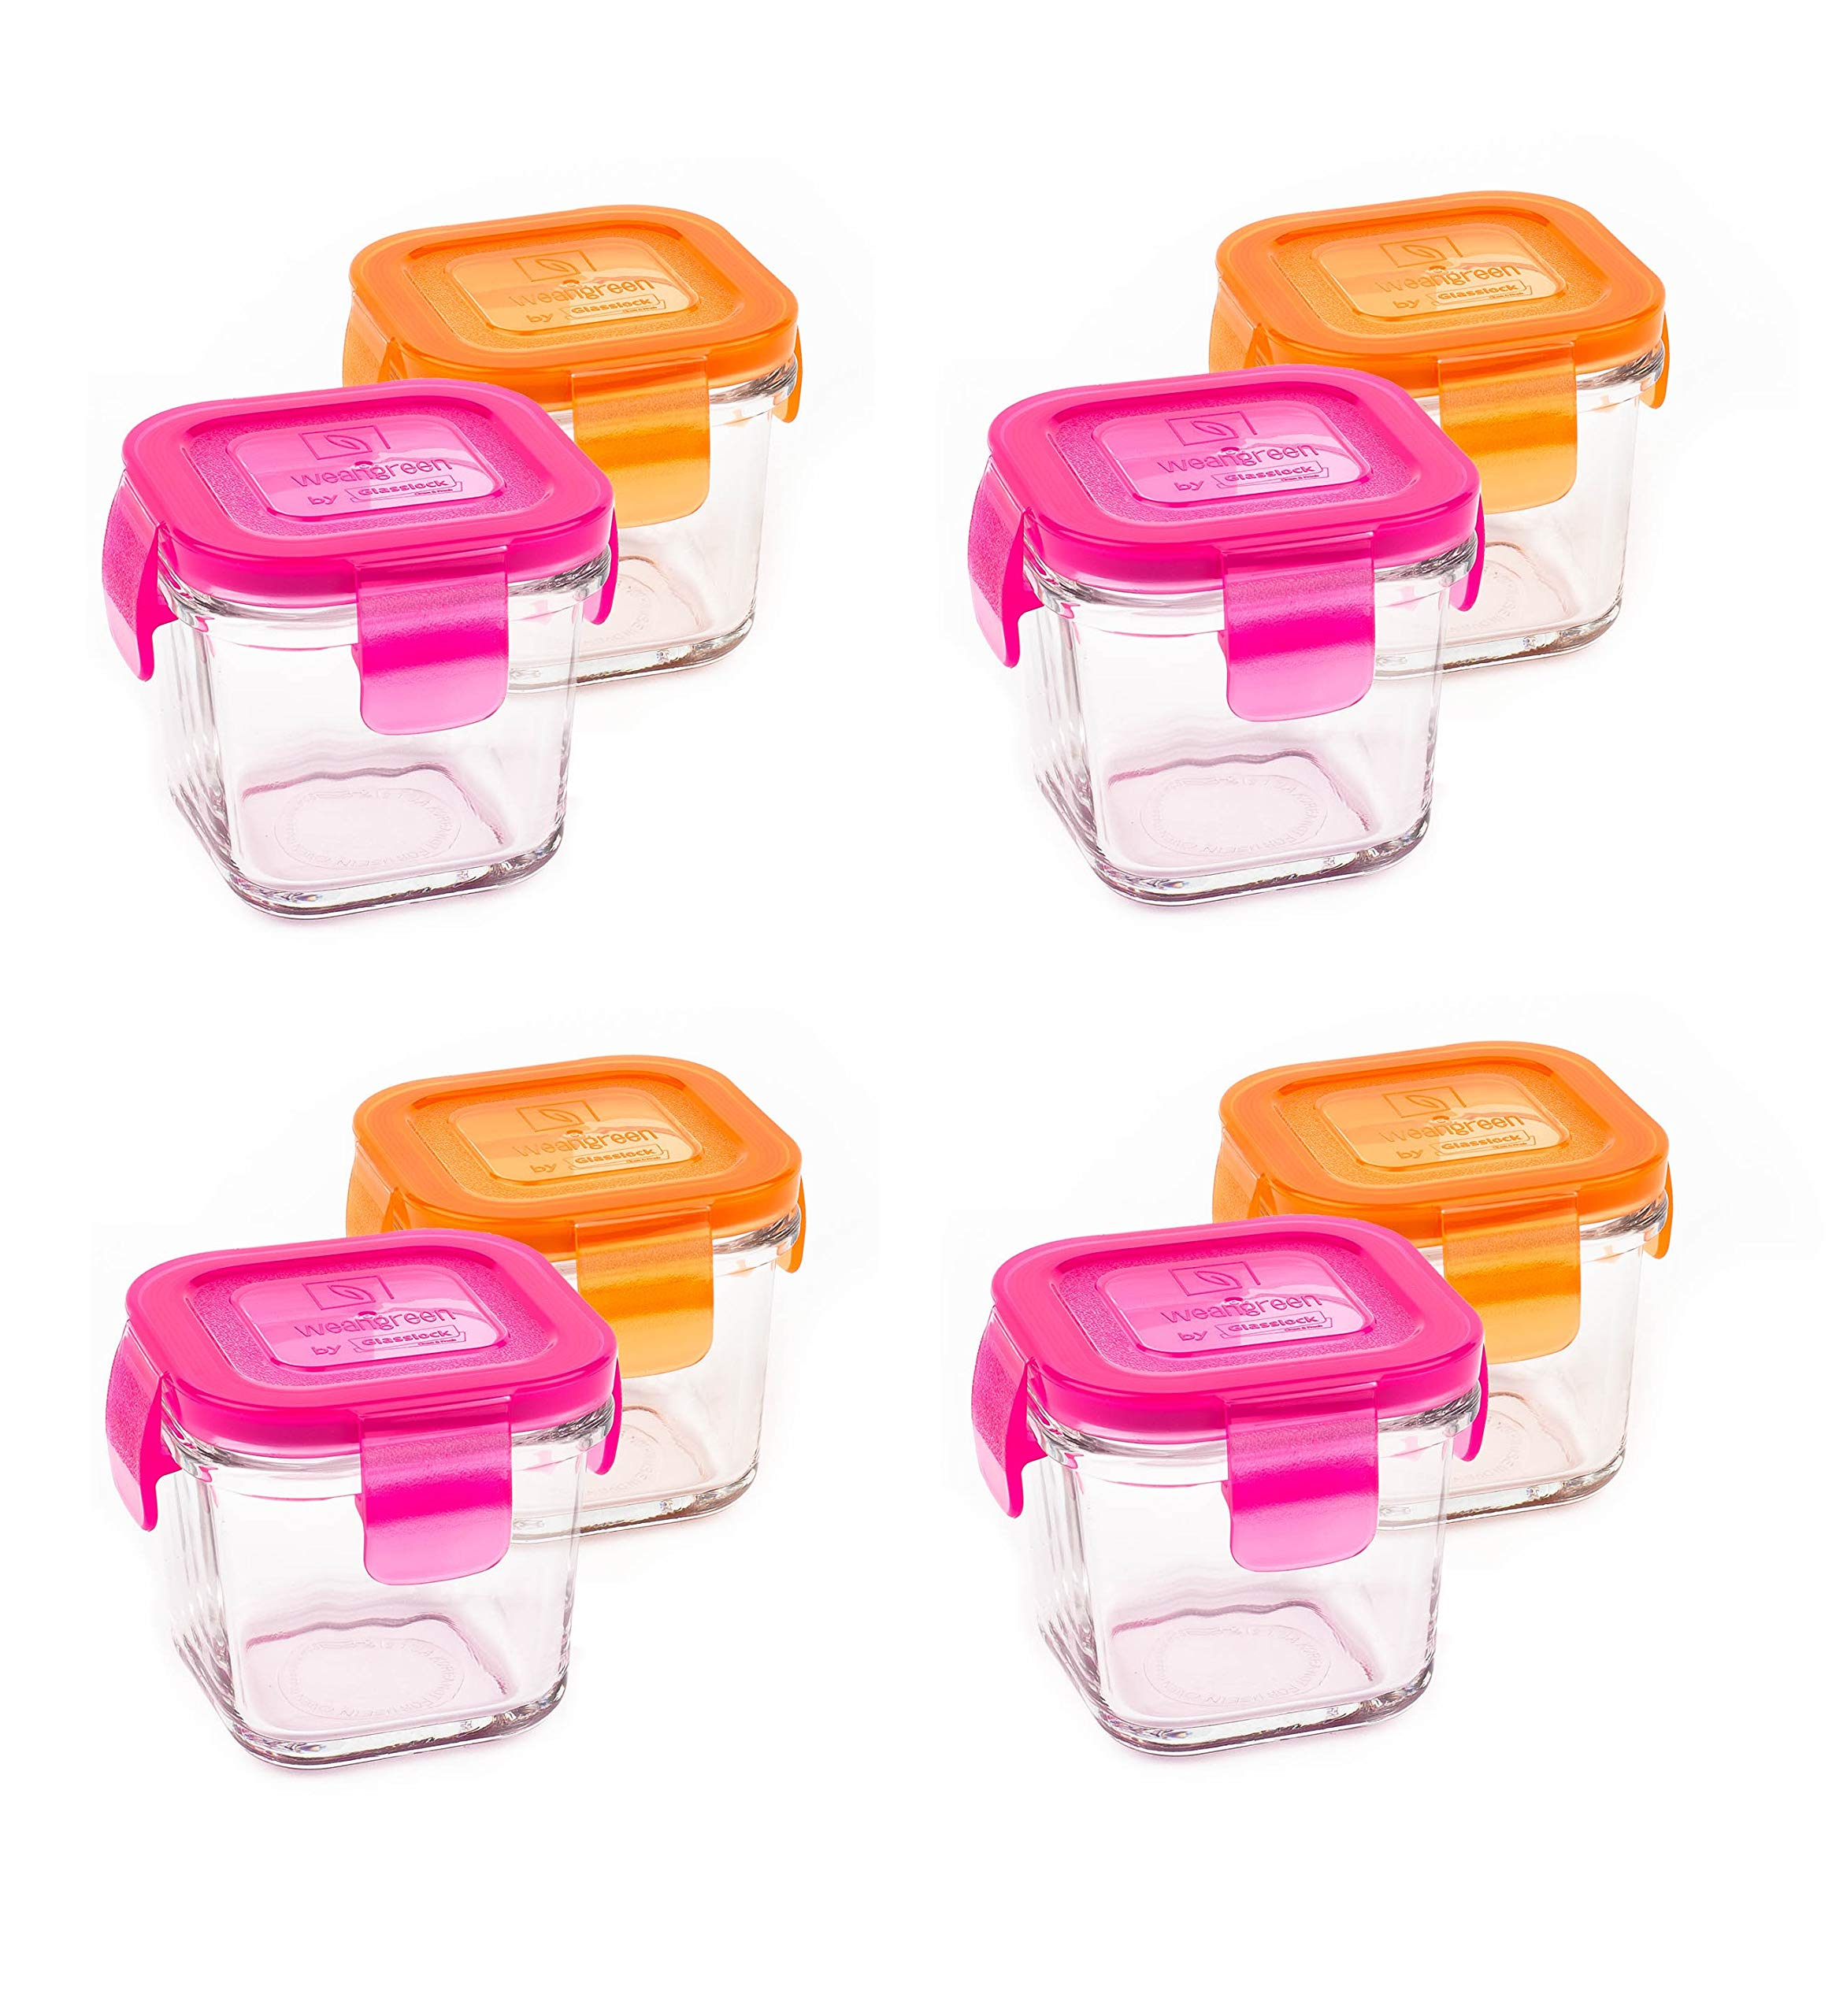 Wean Green Wean Cubes 4oz/120ml Baby Food Glass Containers - Starter Pack Pink and Orange (Set of 8)